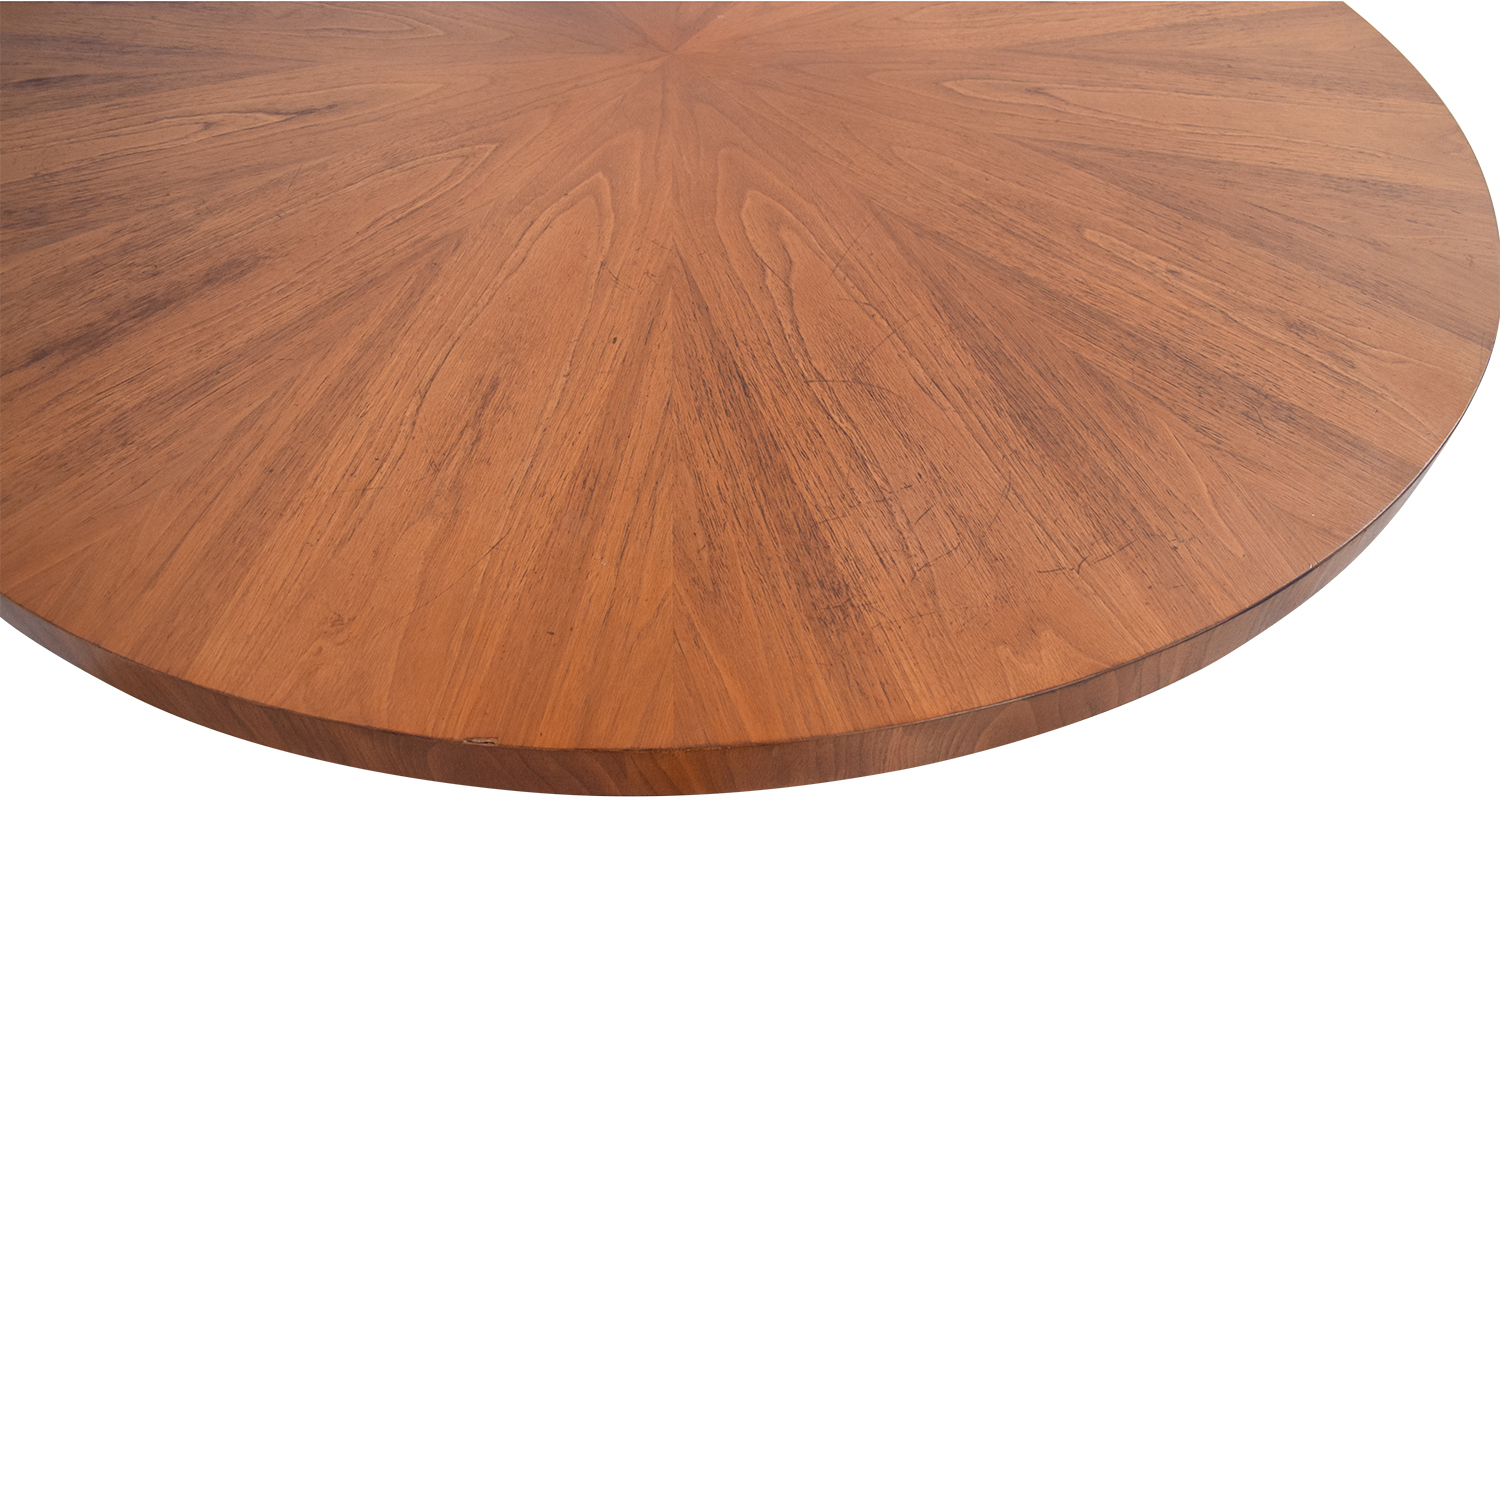 Crate & Barrel Crate & Barrel Round Dining Table coupon